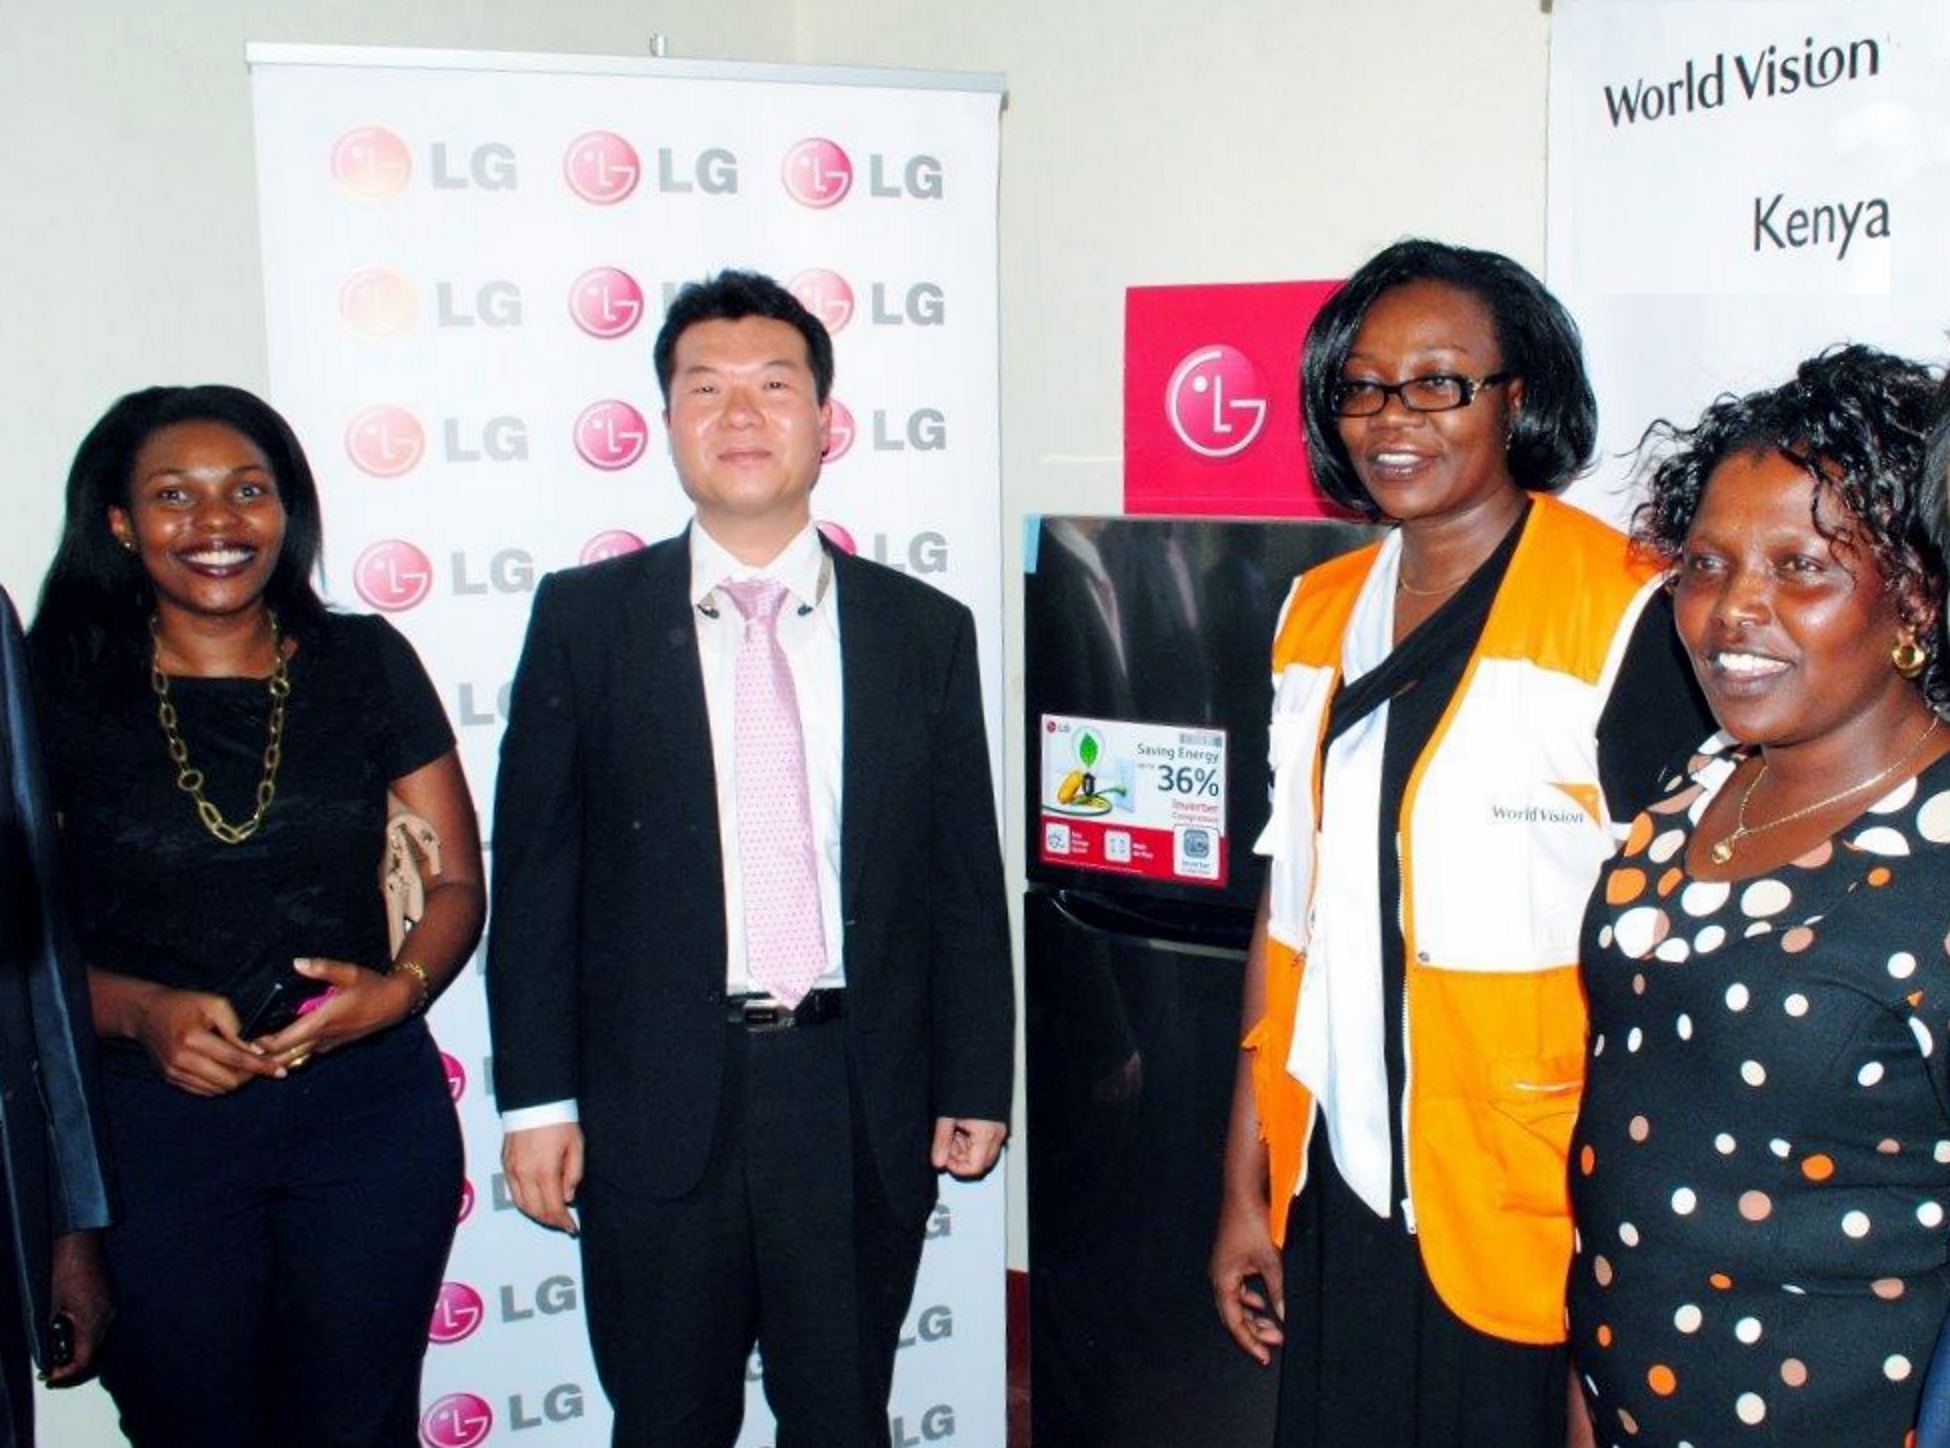 Lg Solar Powered Refrigerators To Rural Communities In